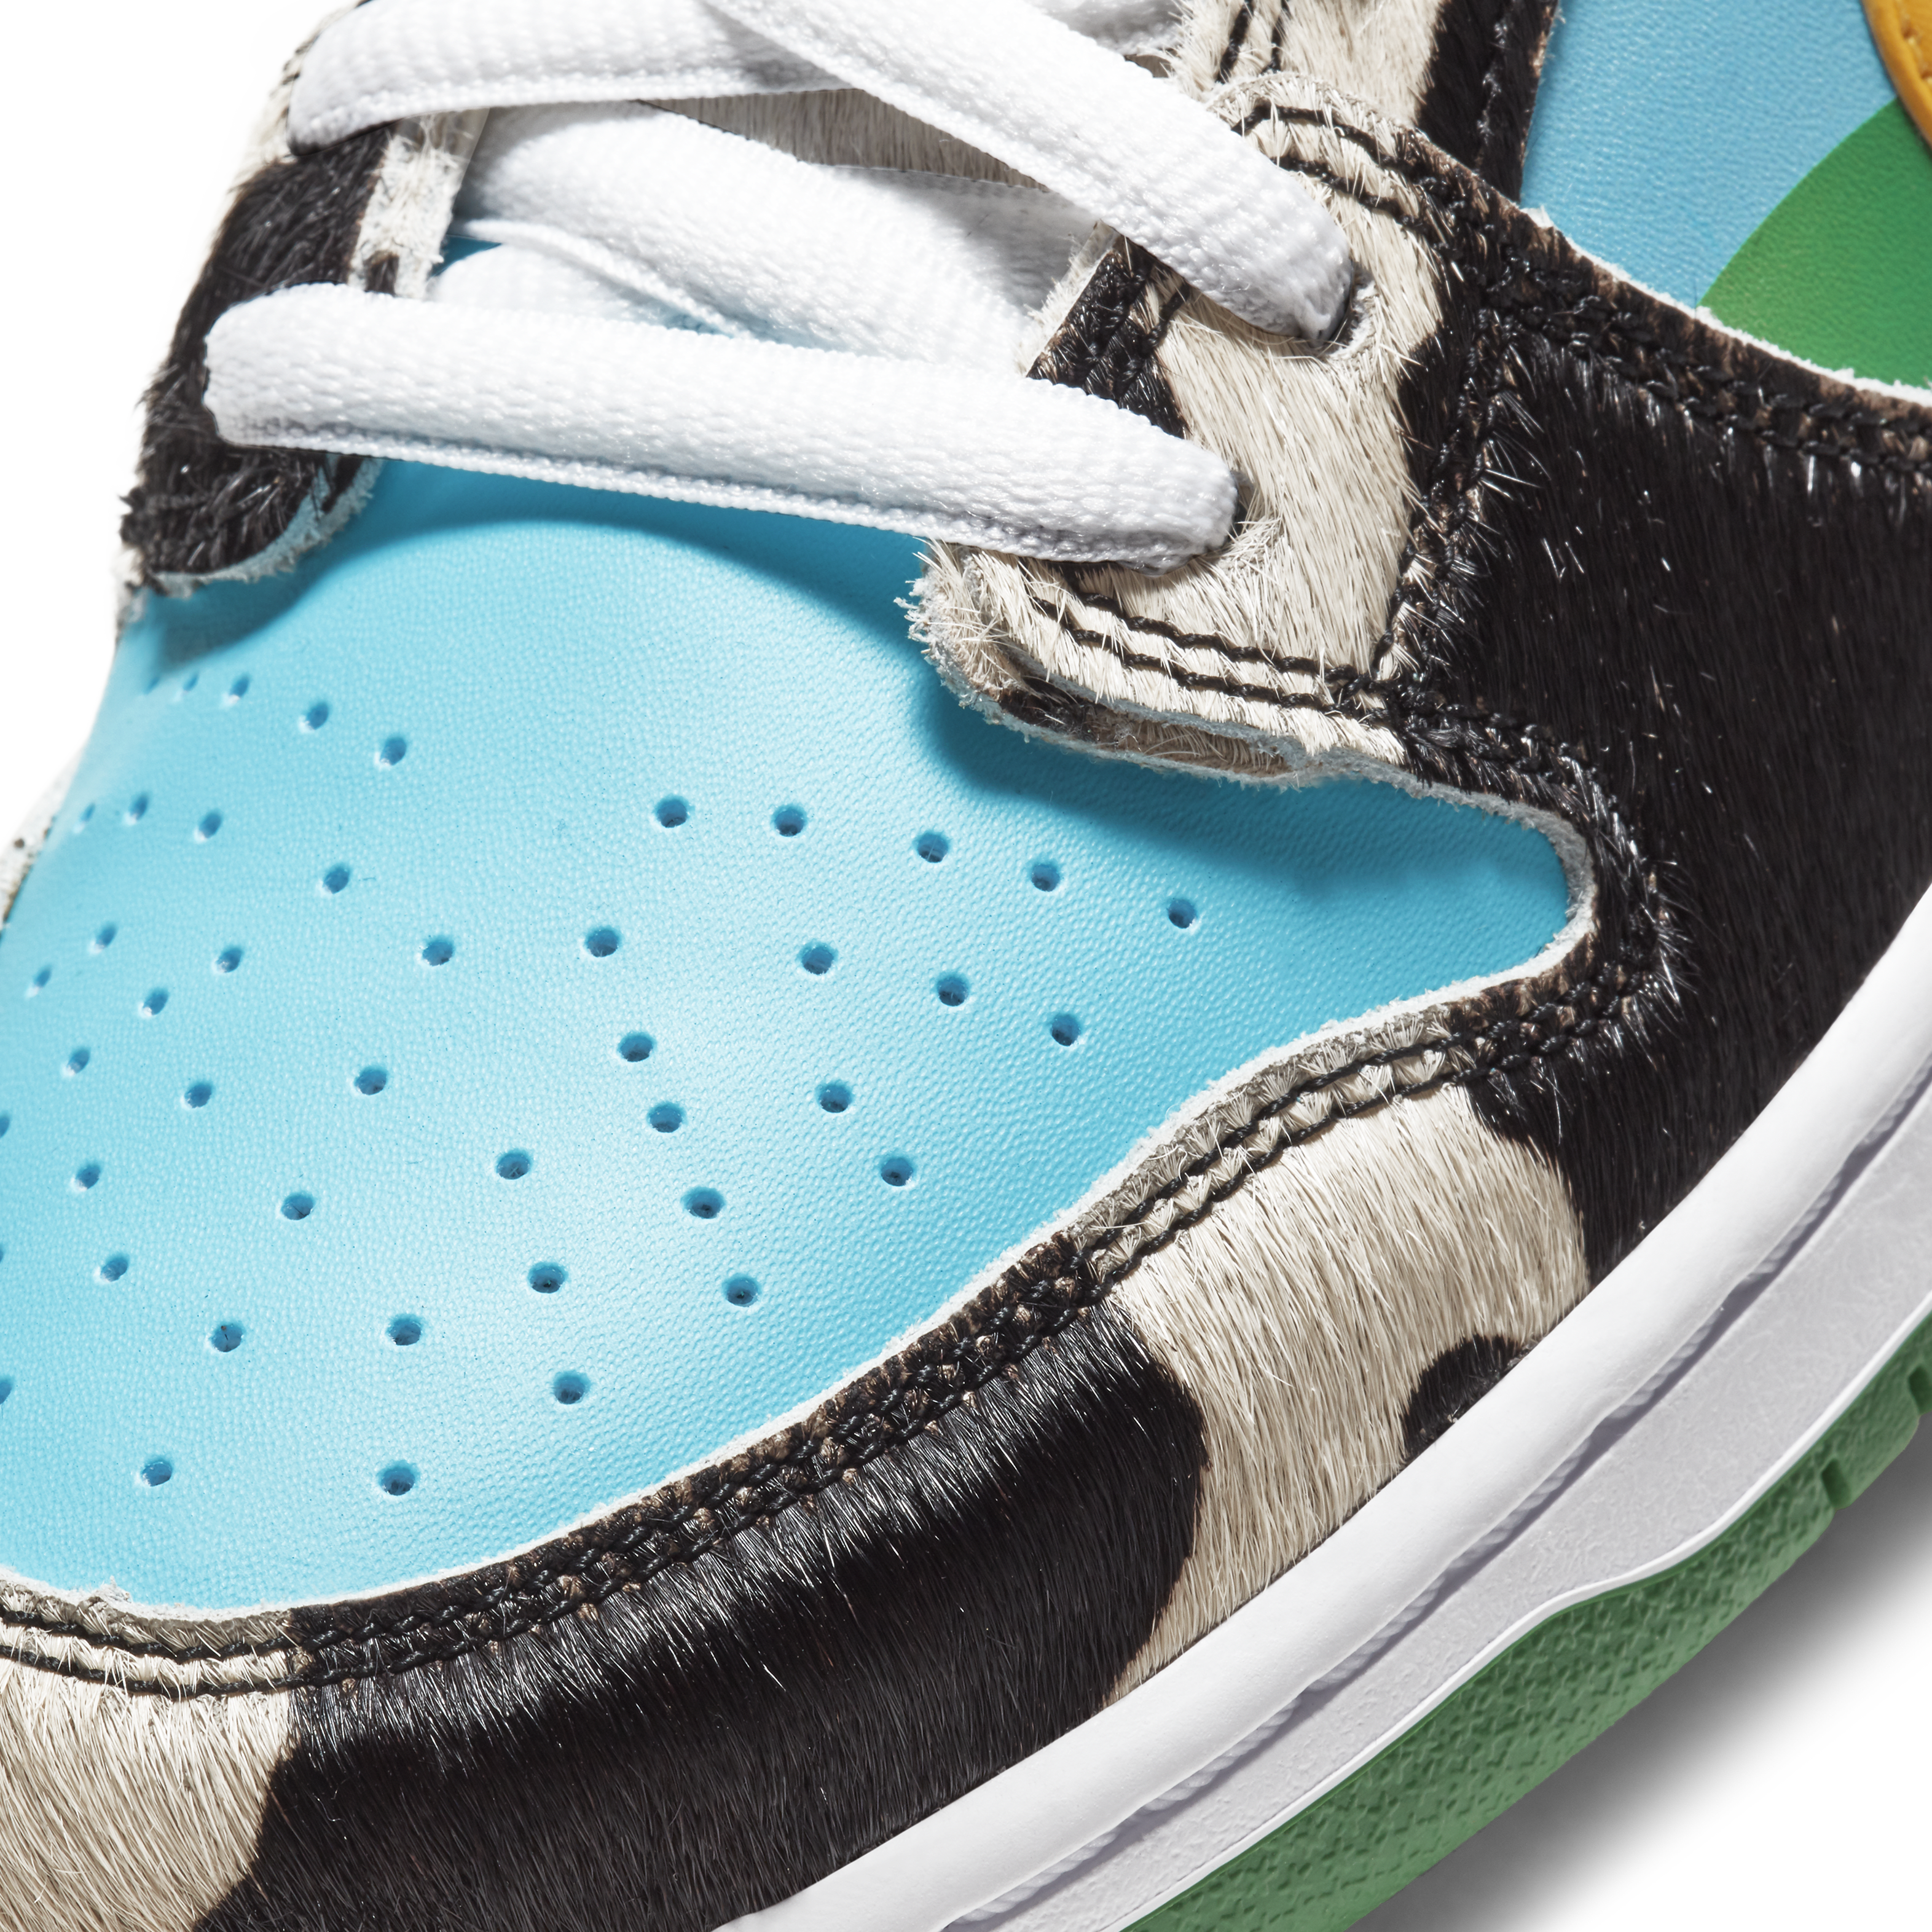 Ben and Jerry's x Nike SB Dunk Low 'Chunky Dunky' CU3244-100 (Toe Detail)